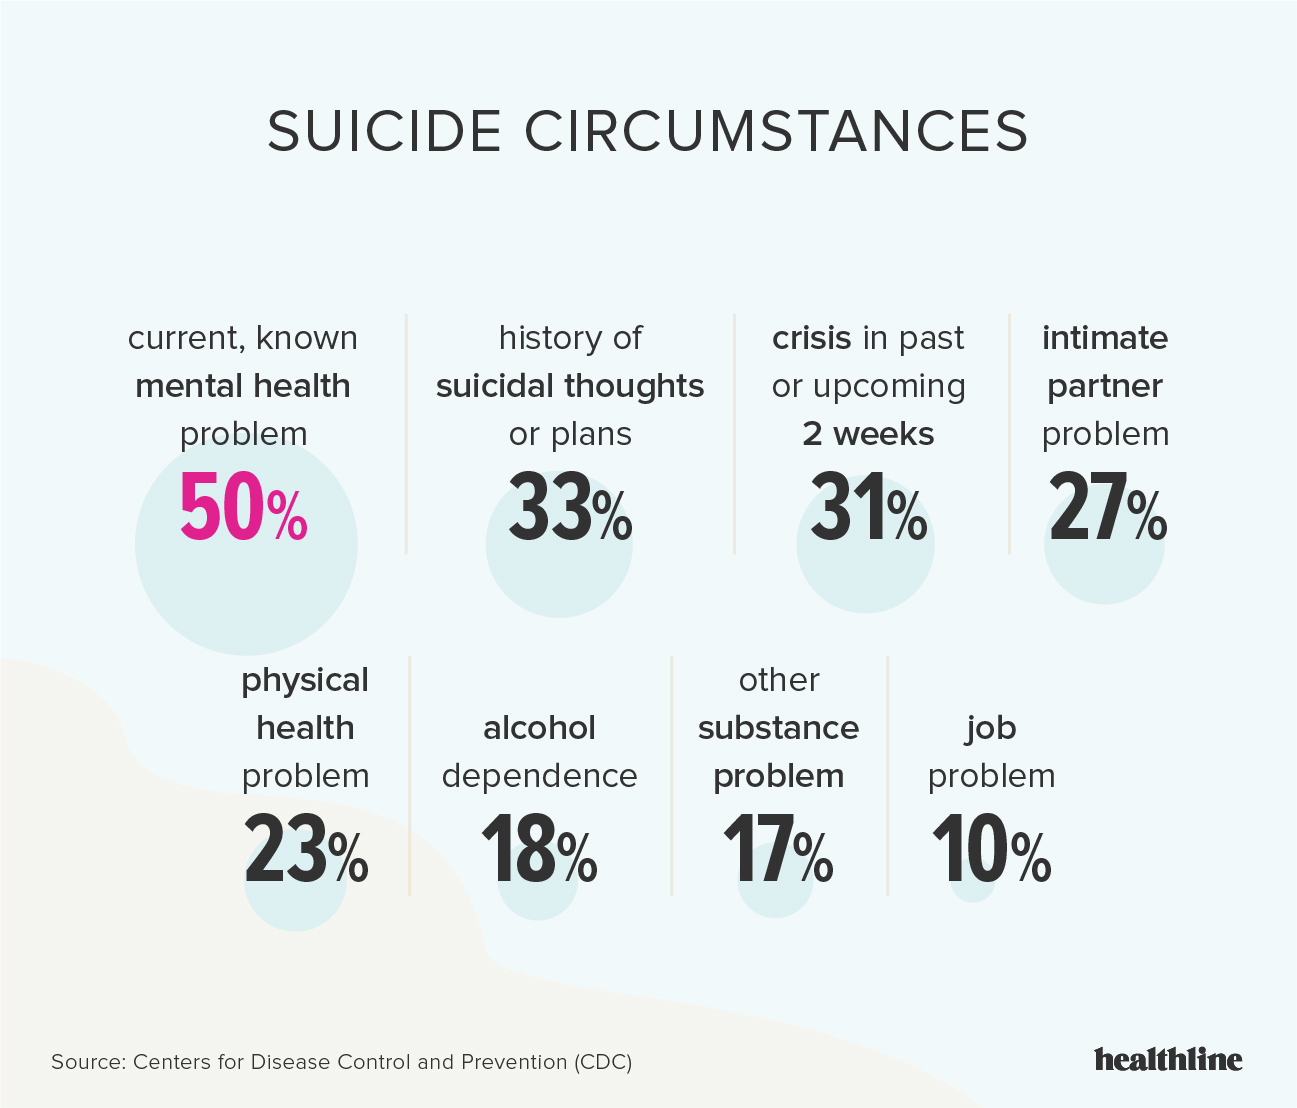 Suicide: Suicidal Signs, Behavior, Risk Factors, How to Talk & More